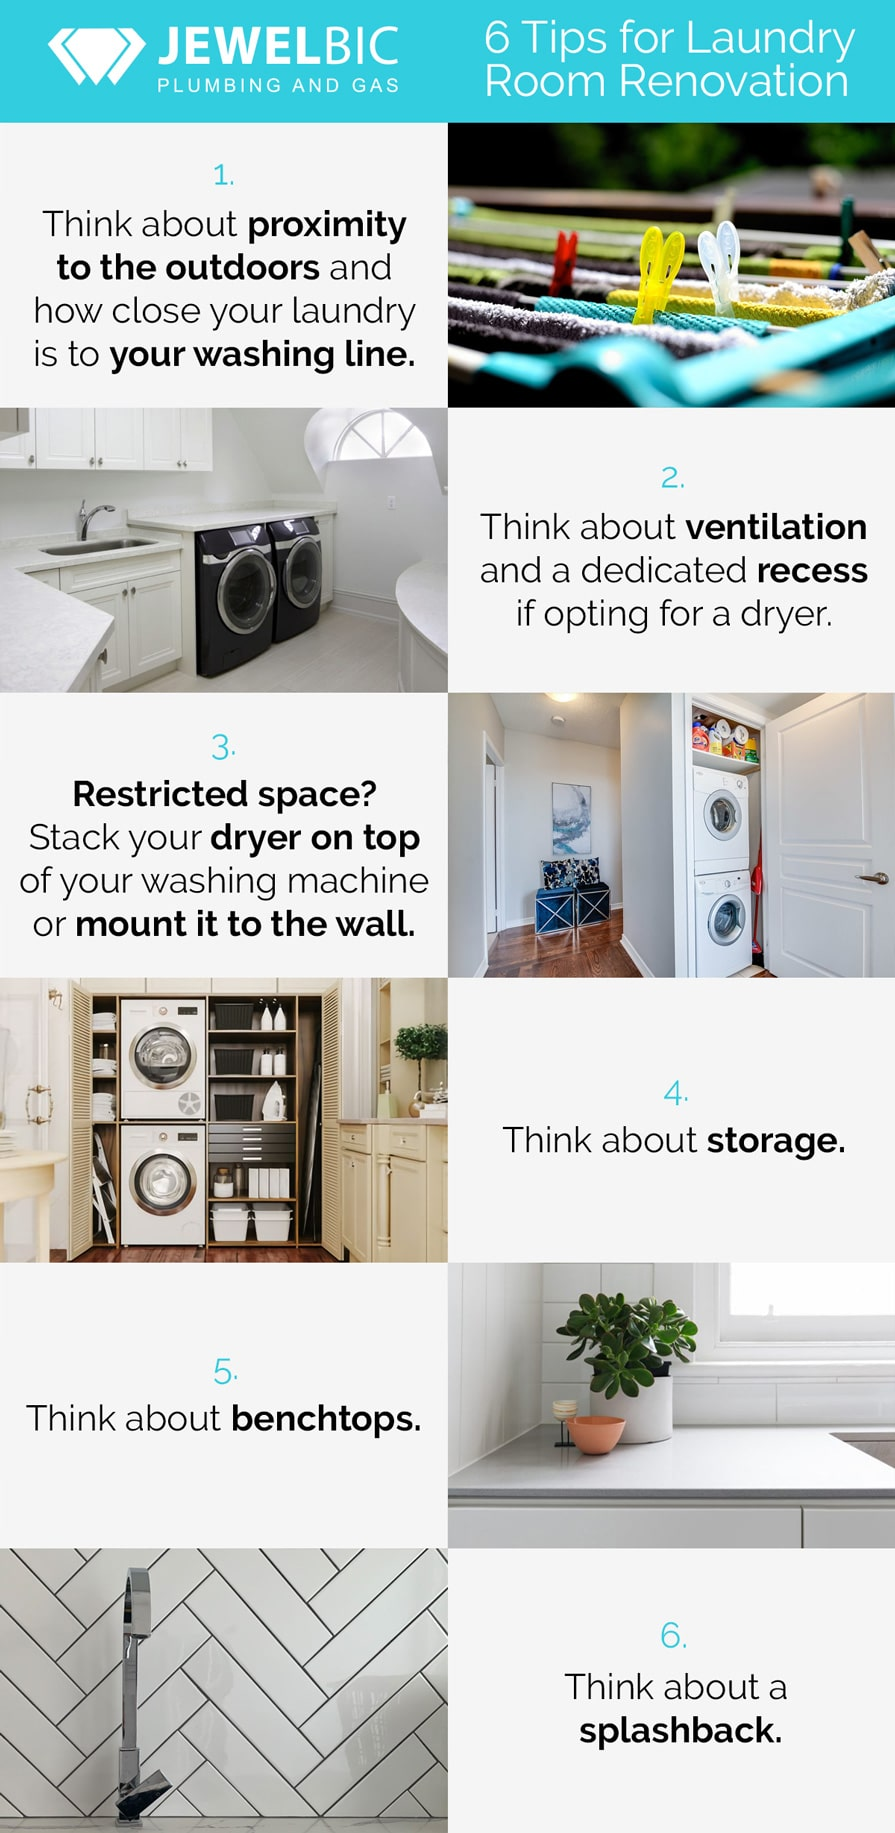 6 Tips for Laundry Room Renovation